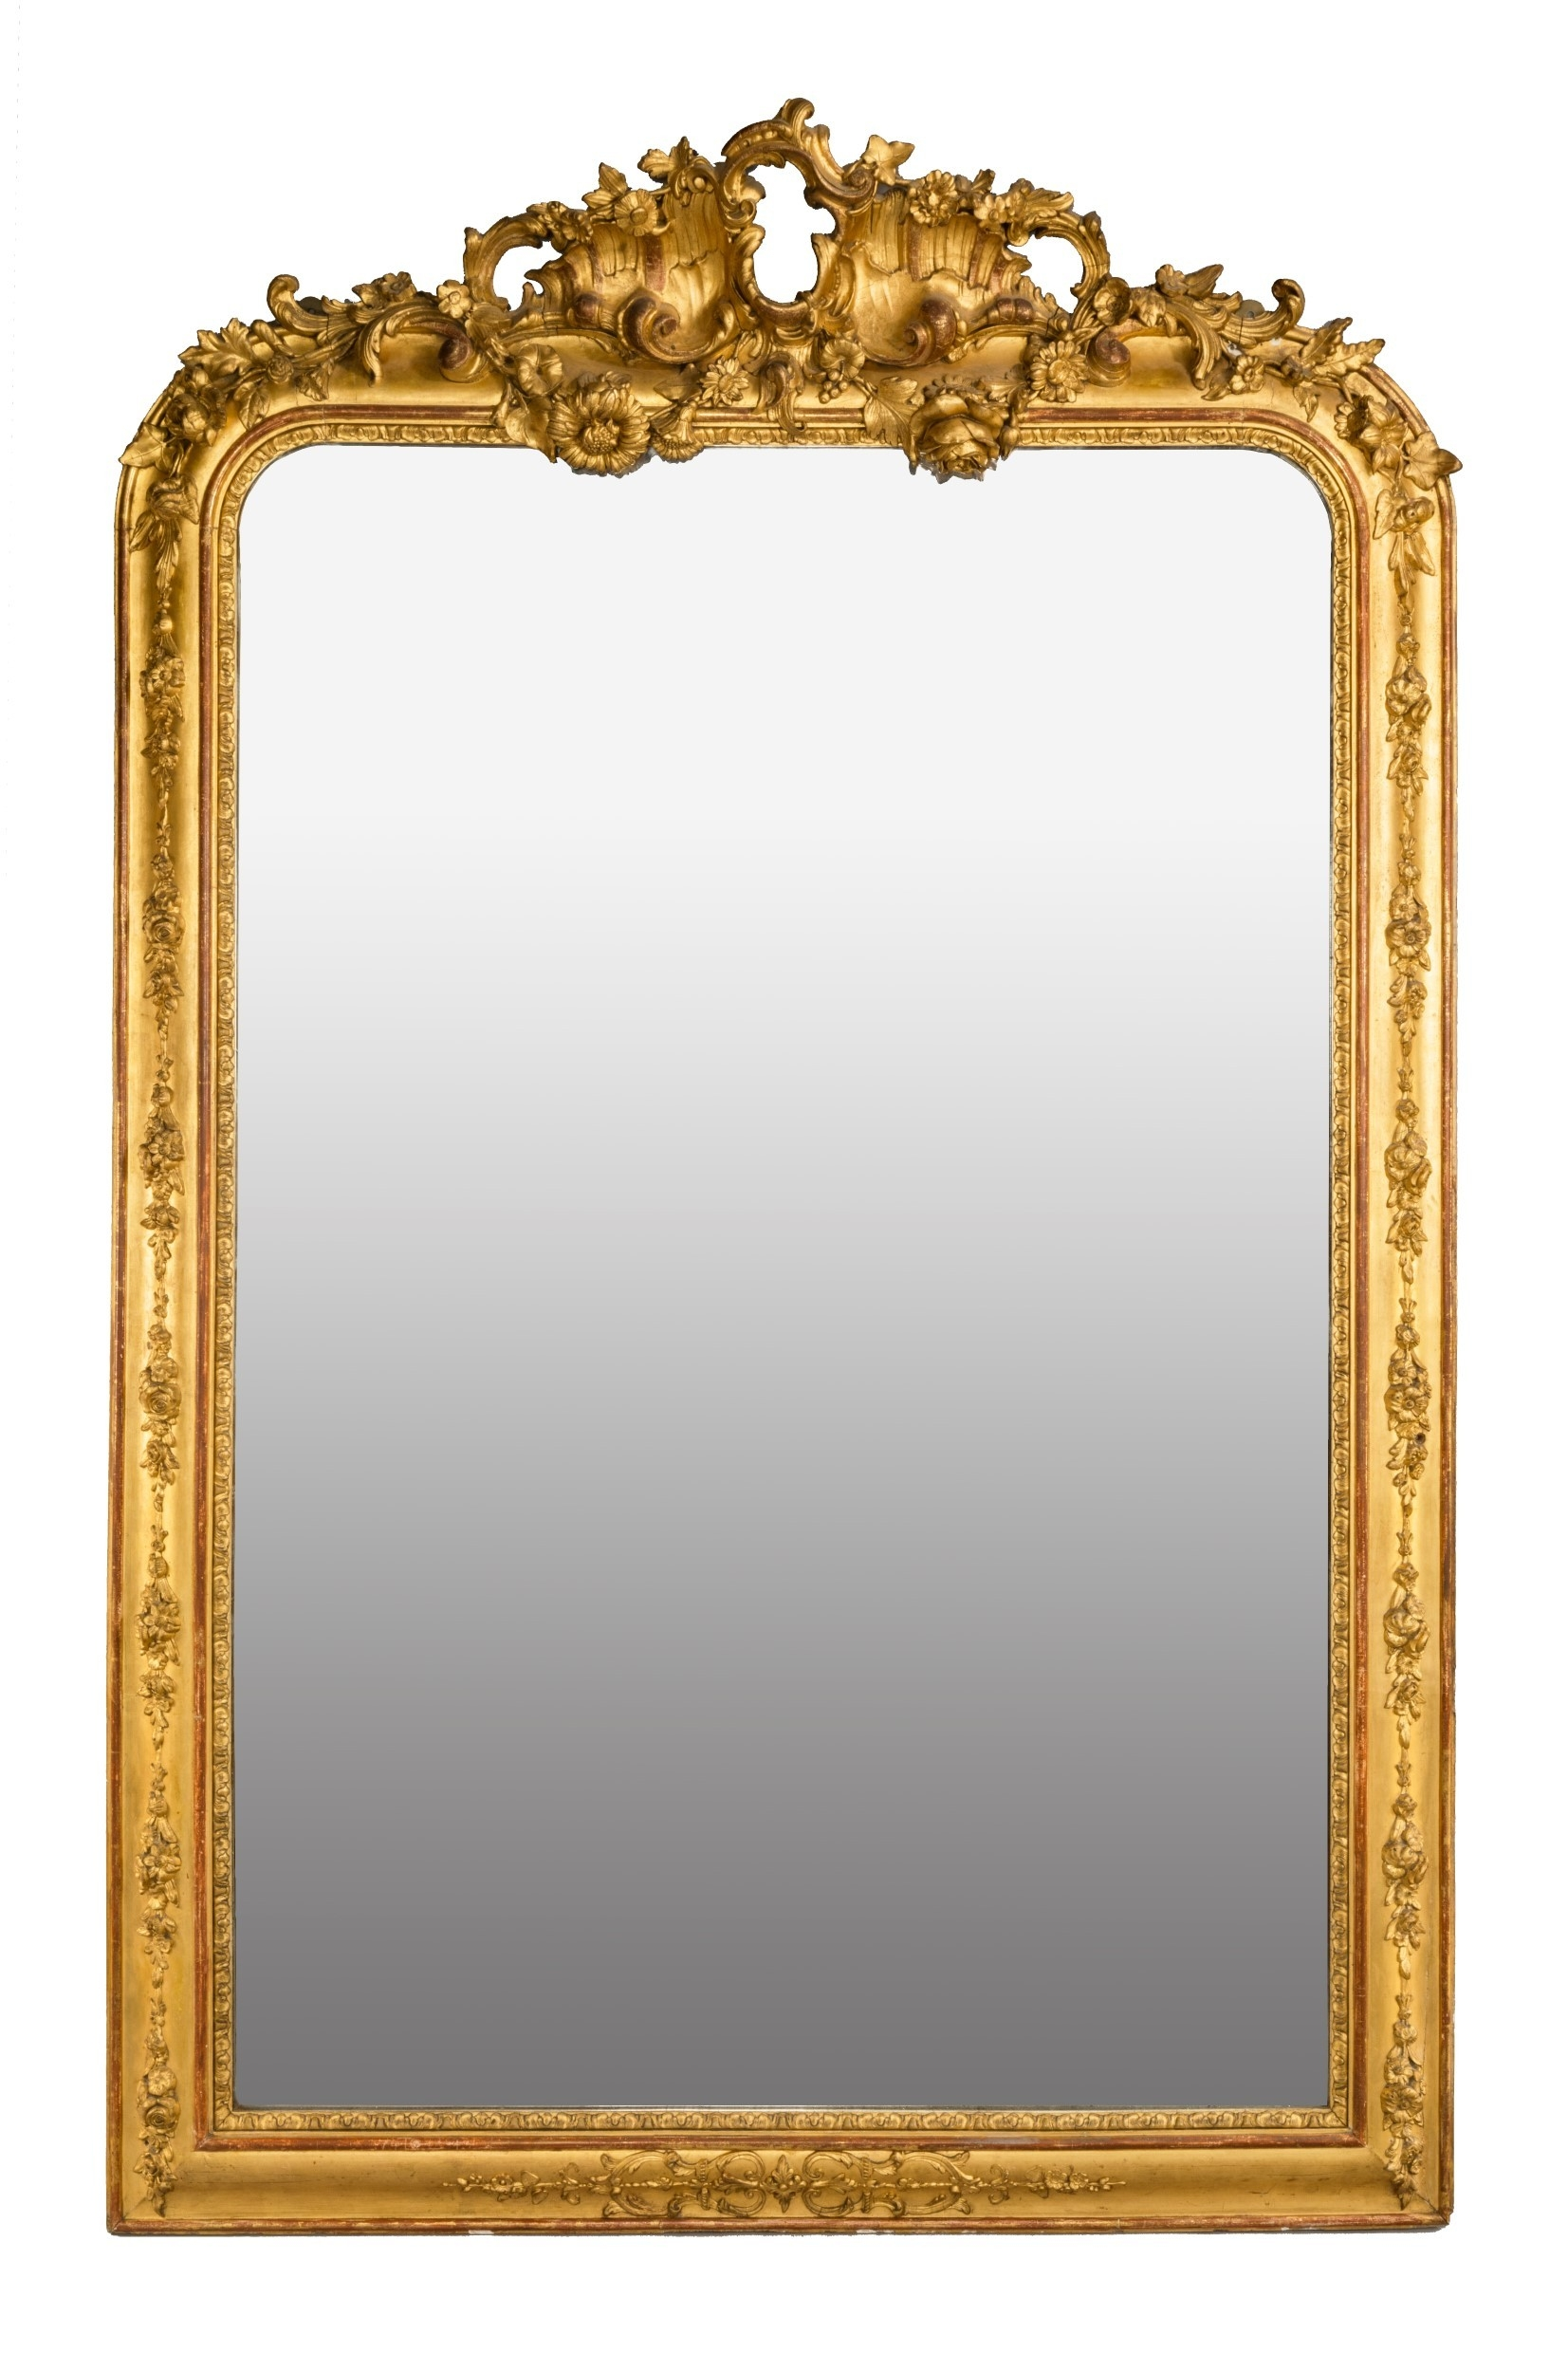 A Pair Of Large Gilt Mirrors C 1860 Continental From Summers Regarding Gilt Mirrors (Image 2 of 15)